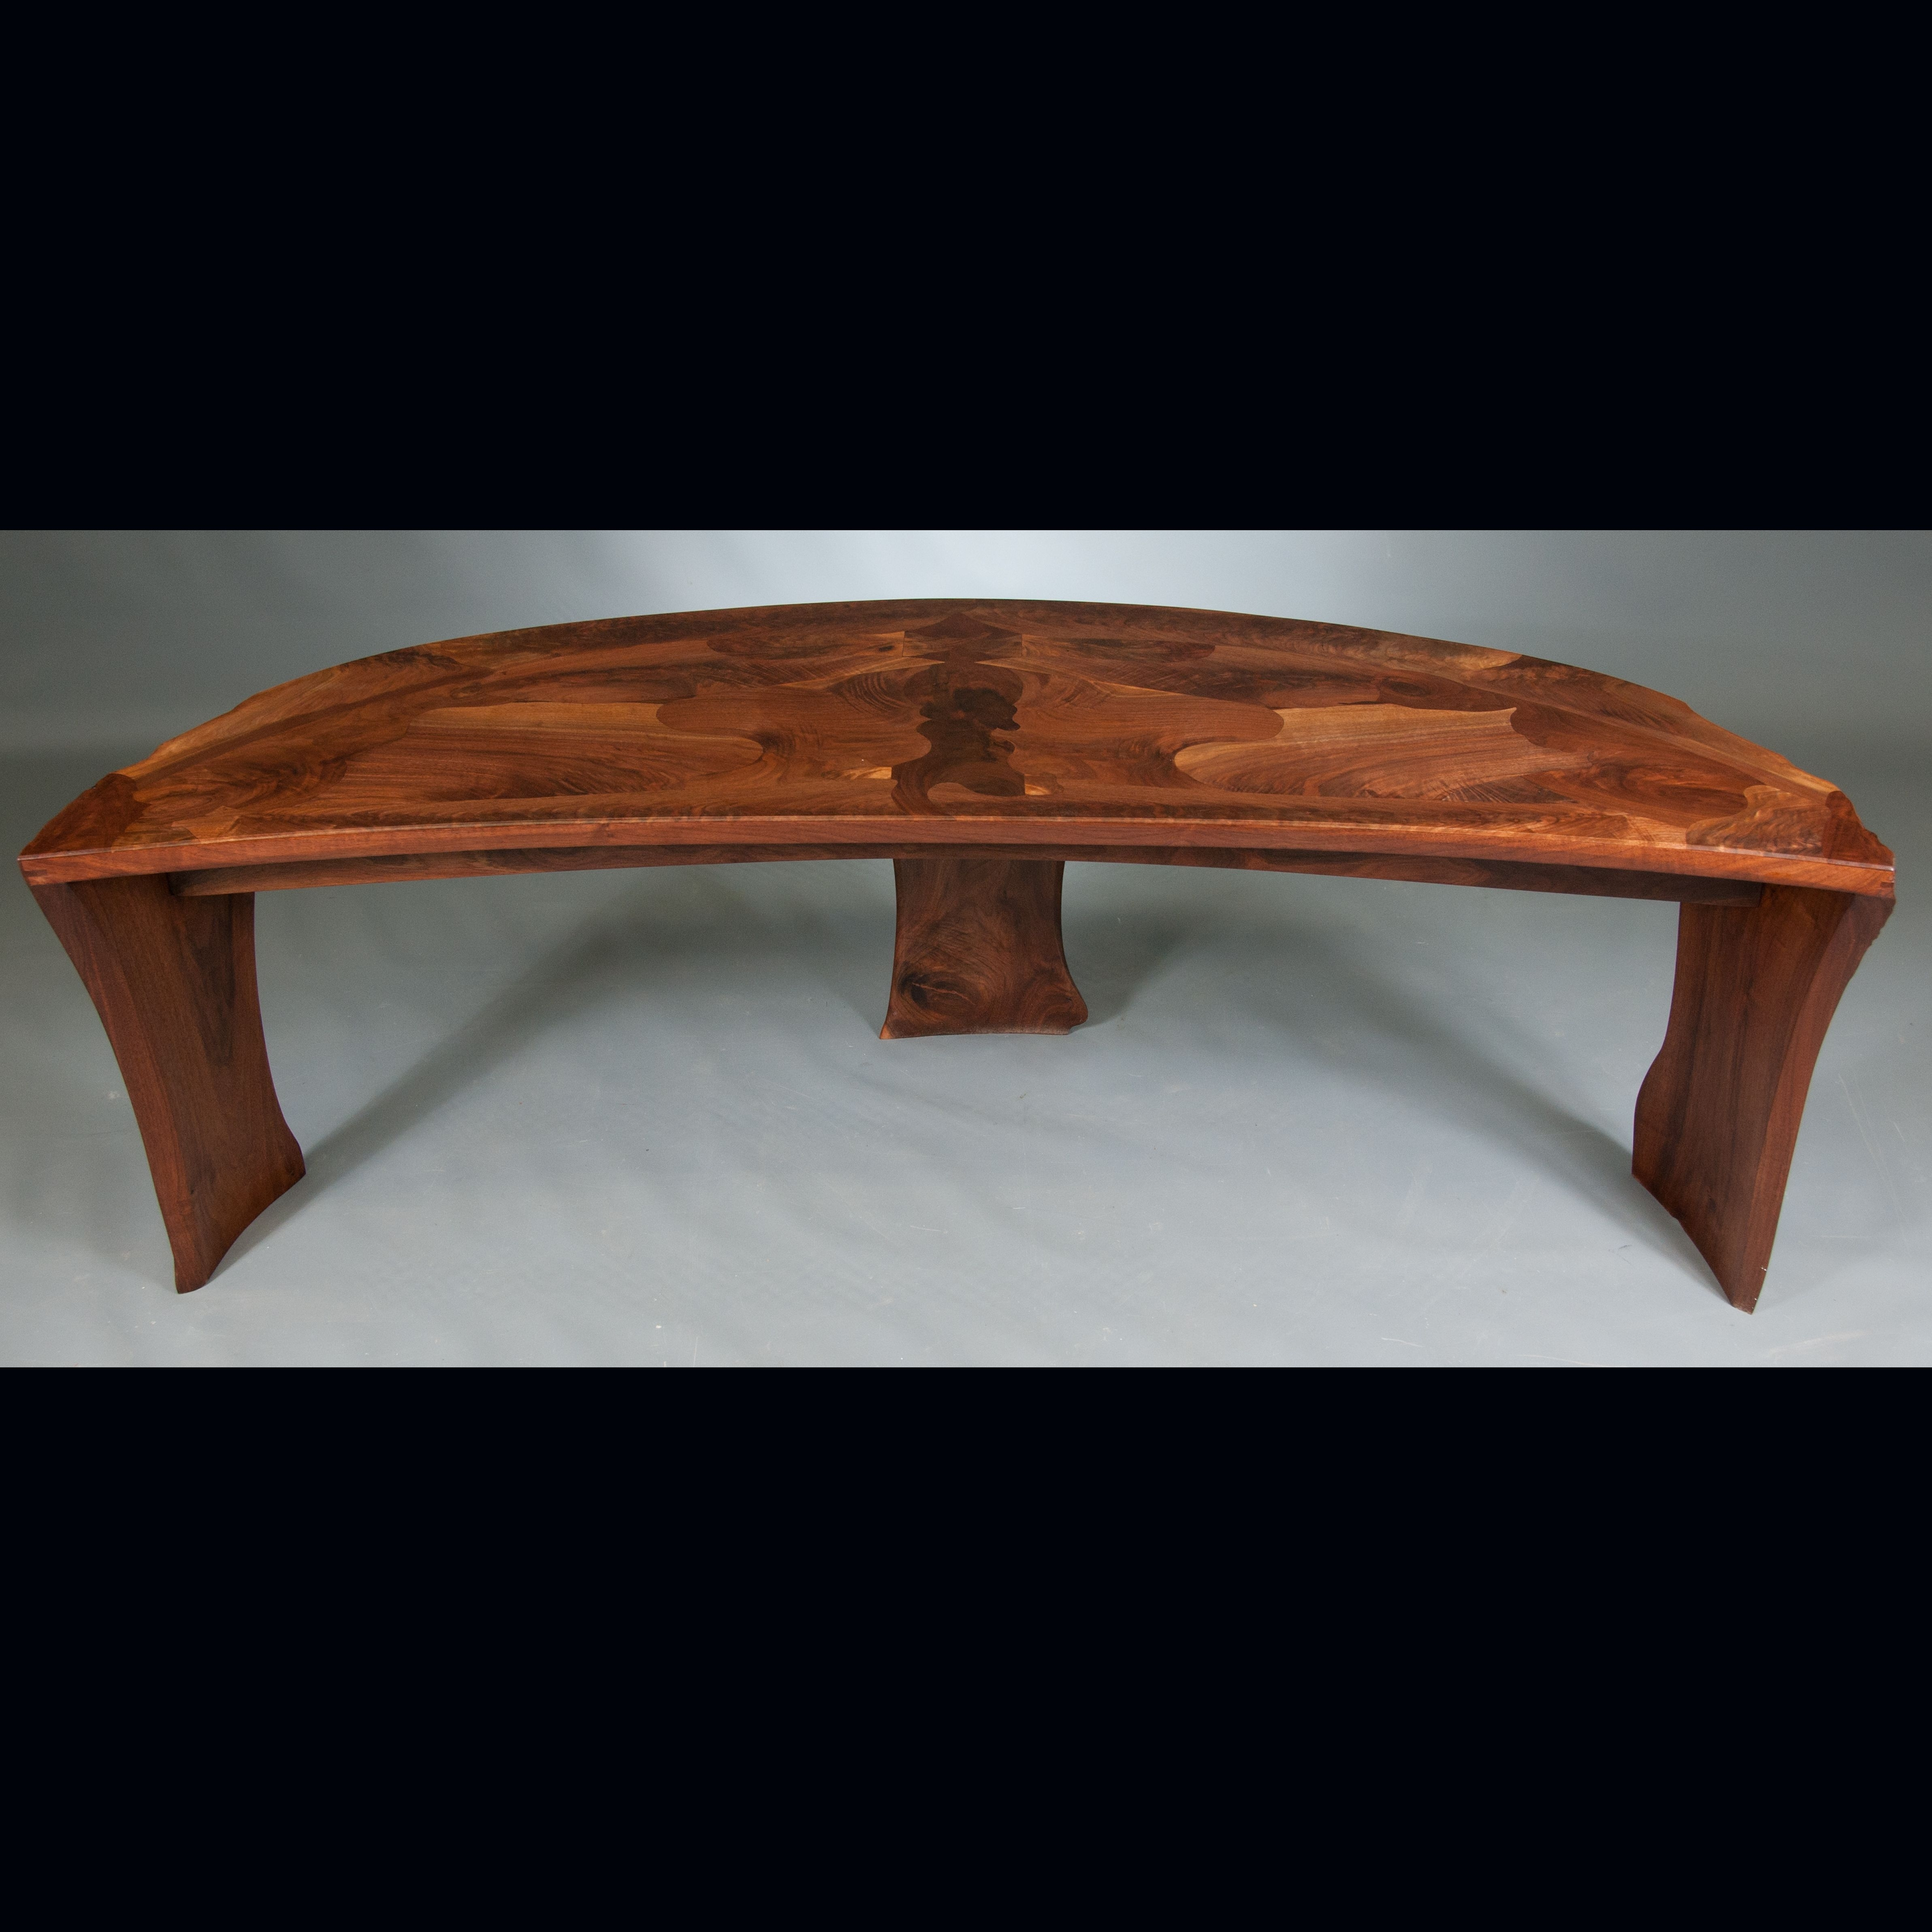 Hand Crafted Abstract Organic Expressionism In Furniture™ Walnut inside Expressionist Coffee Tables (Image 16 of 30)